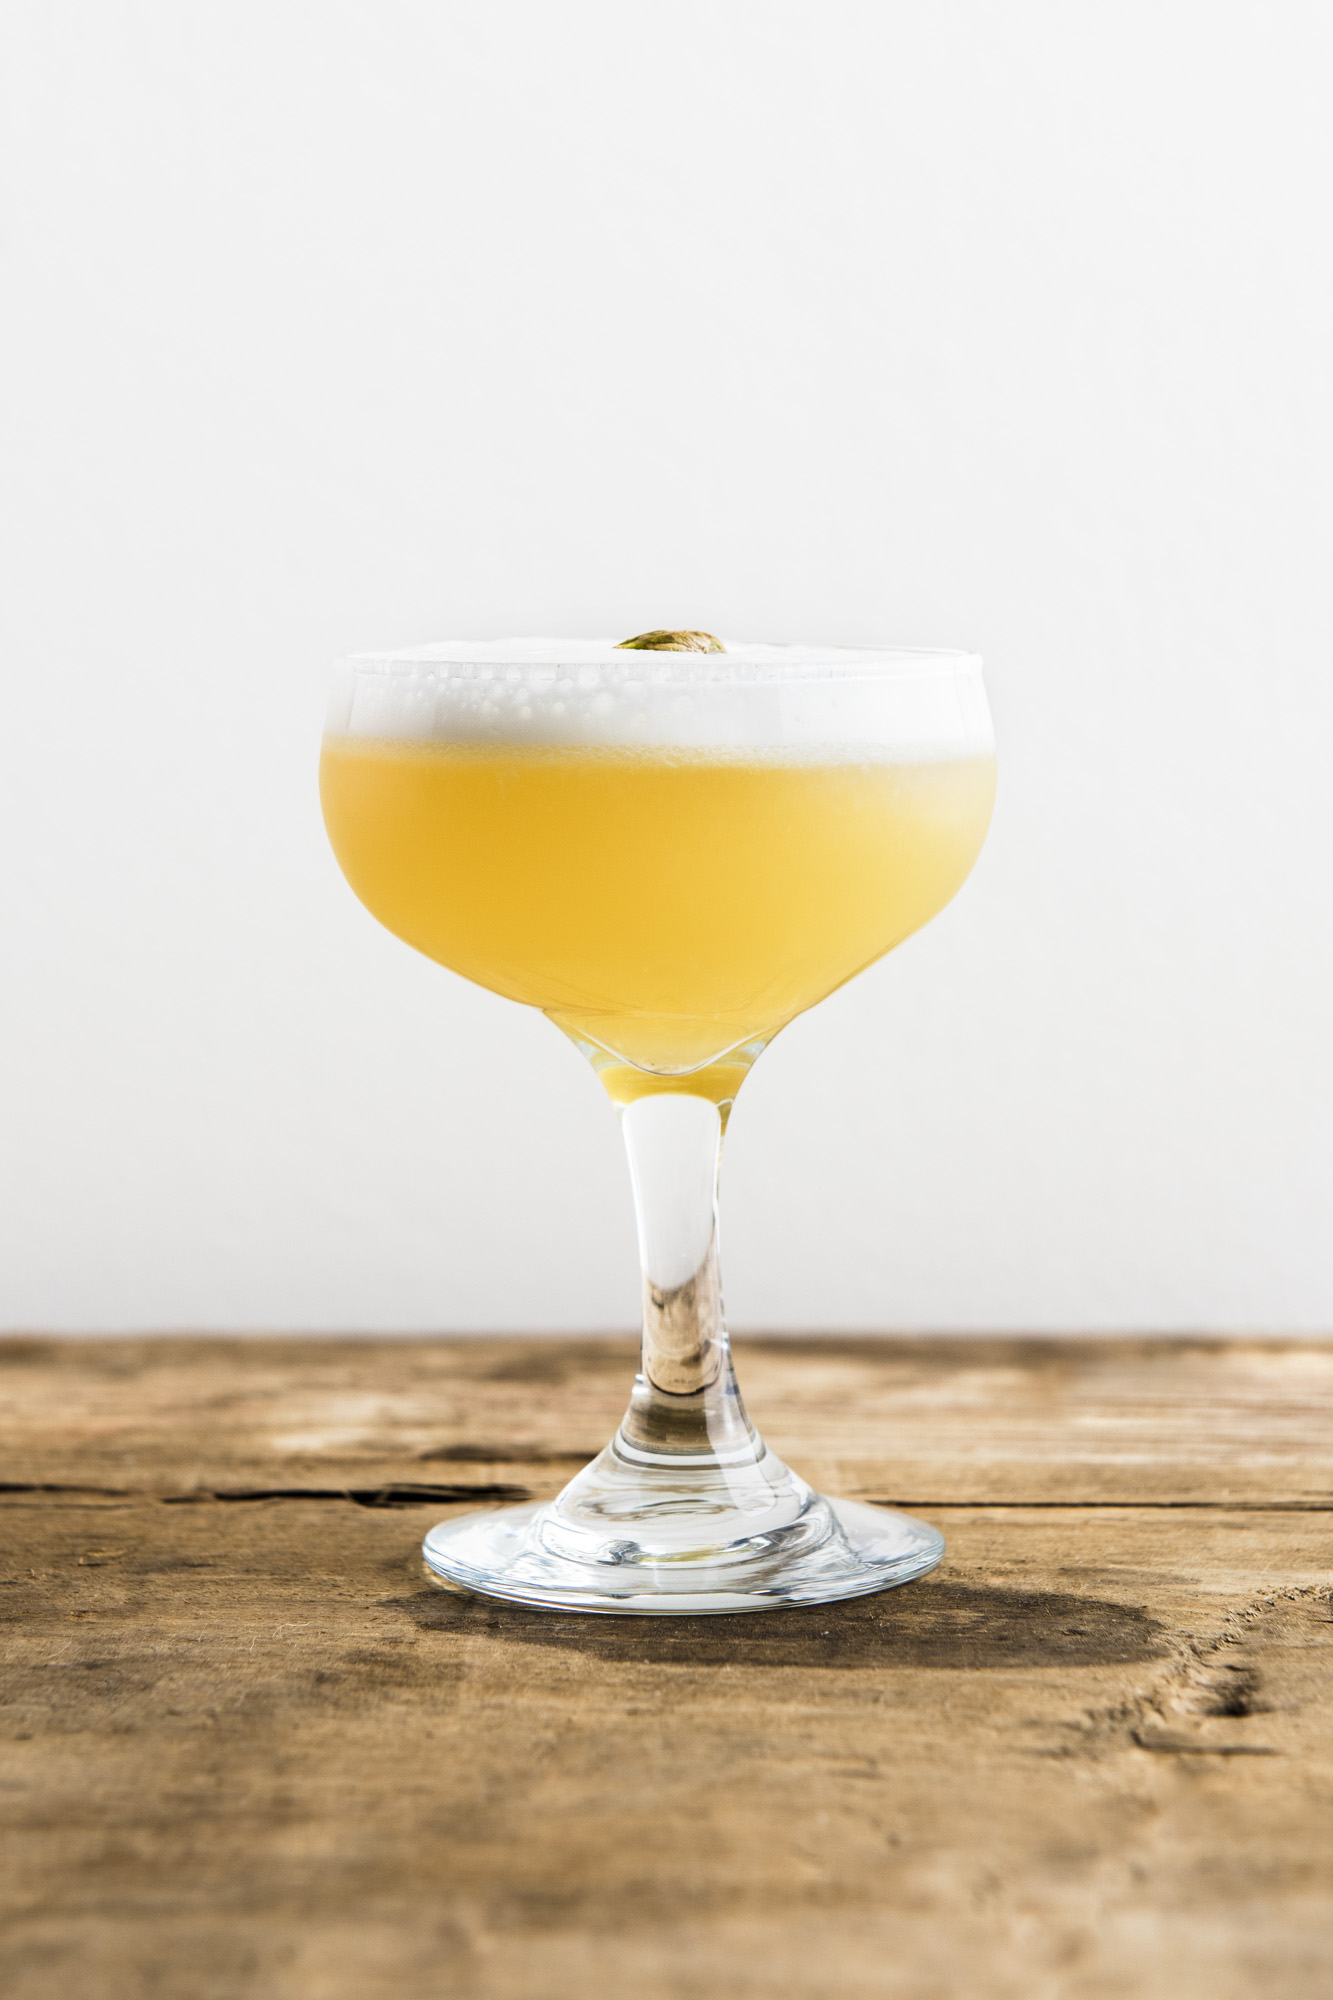 SAN SIMEON   1 1/2 oz Mezcal  1/2 oz Chareau  3/4 oz Fresh Lemon Juice  1/4 oz Light Agave Syrup  1 Egg White  Dry shake all ingredients without ice. Add ice and shake again. Pour into coupe and garnish with a pistachio.